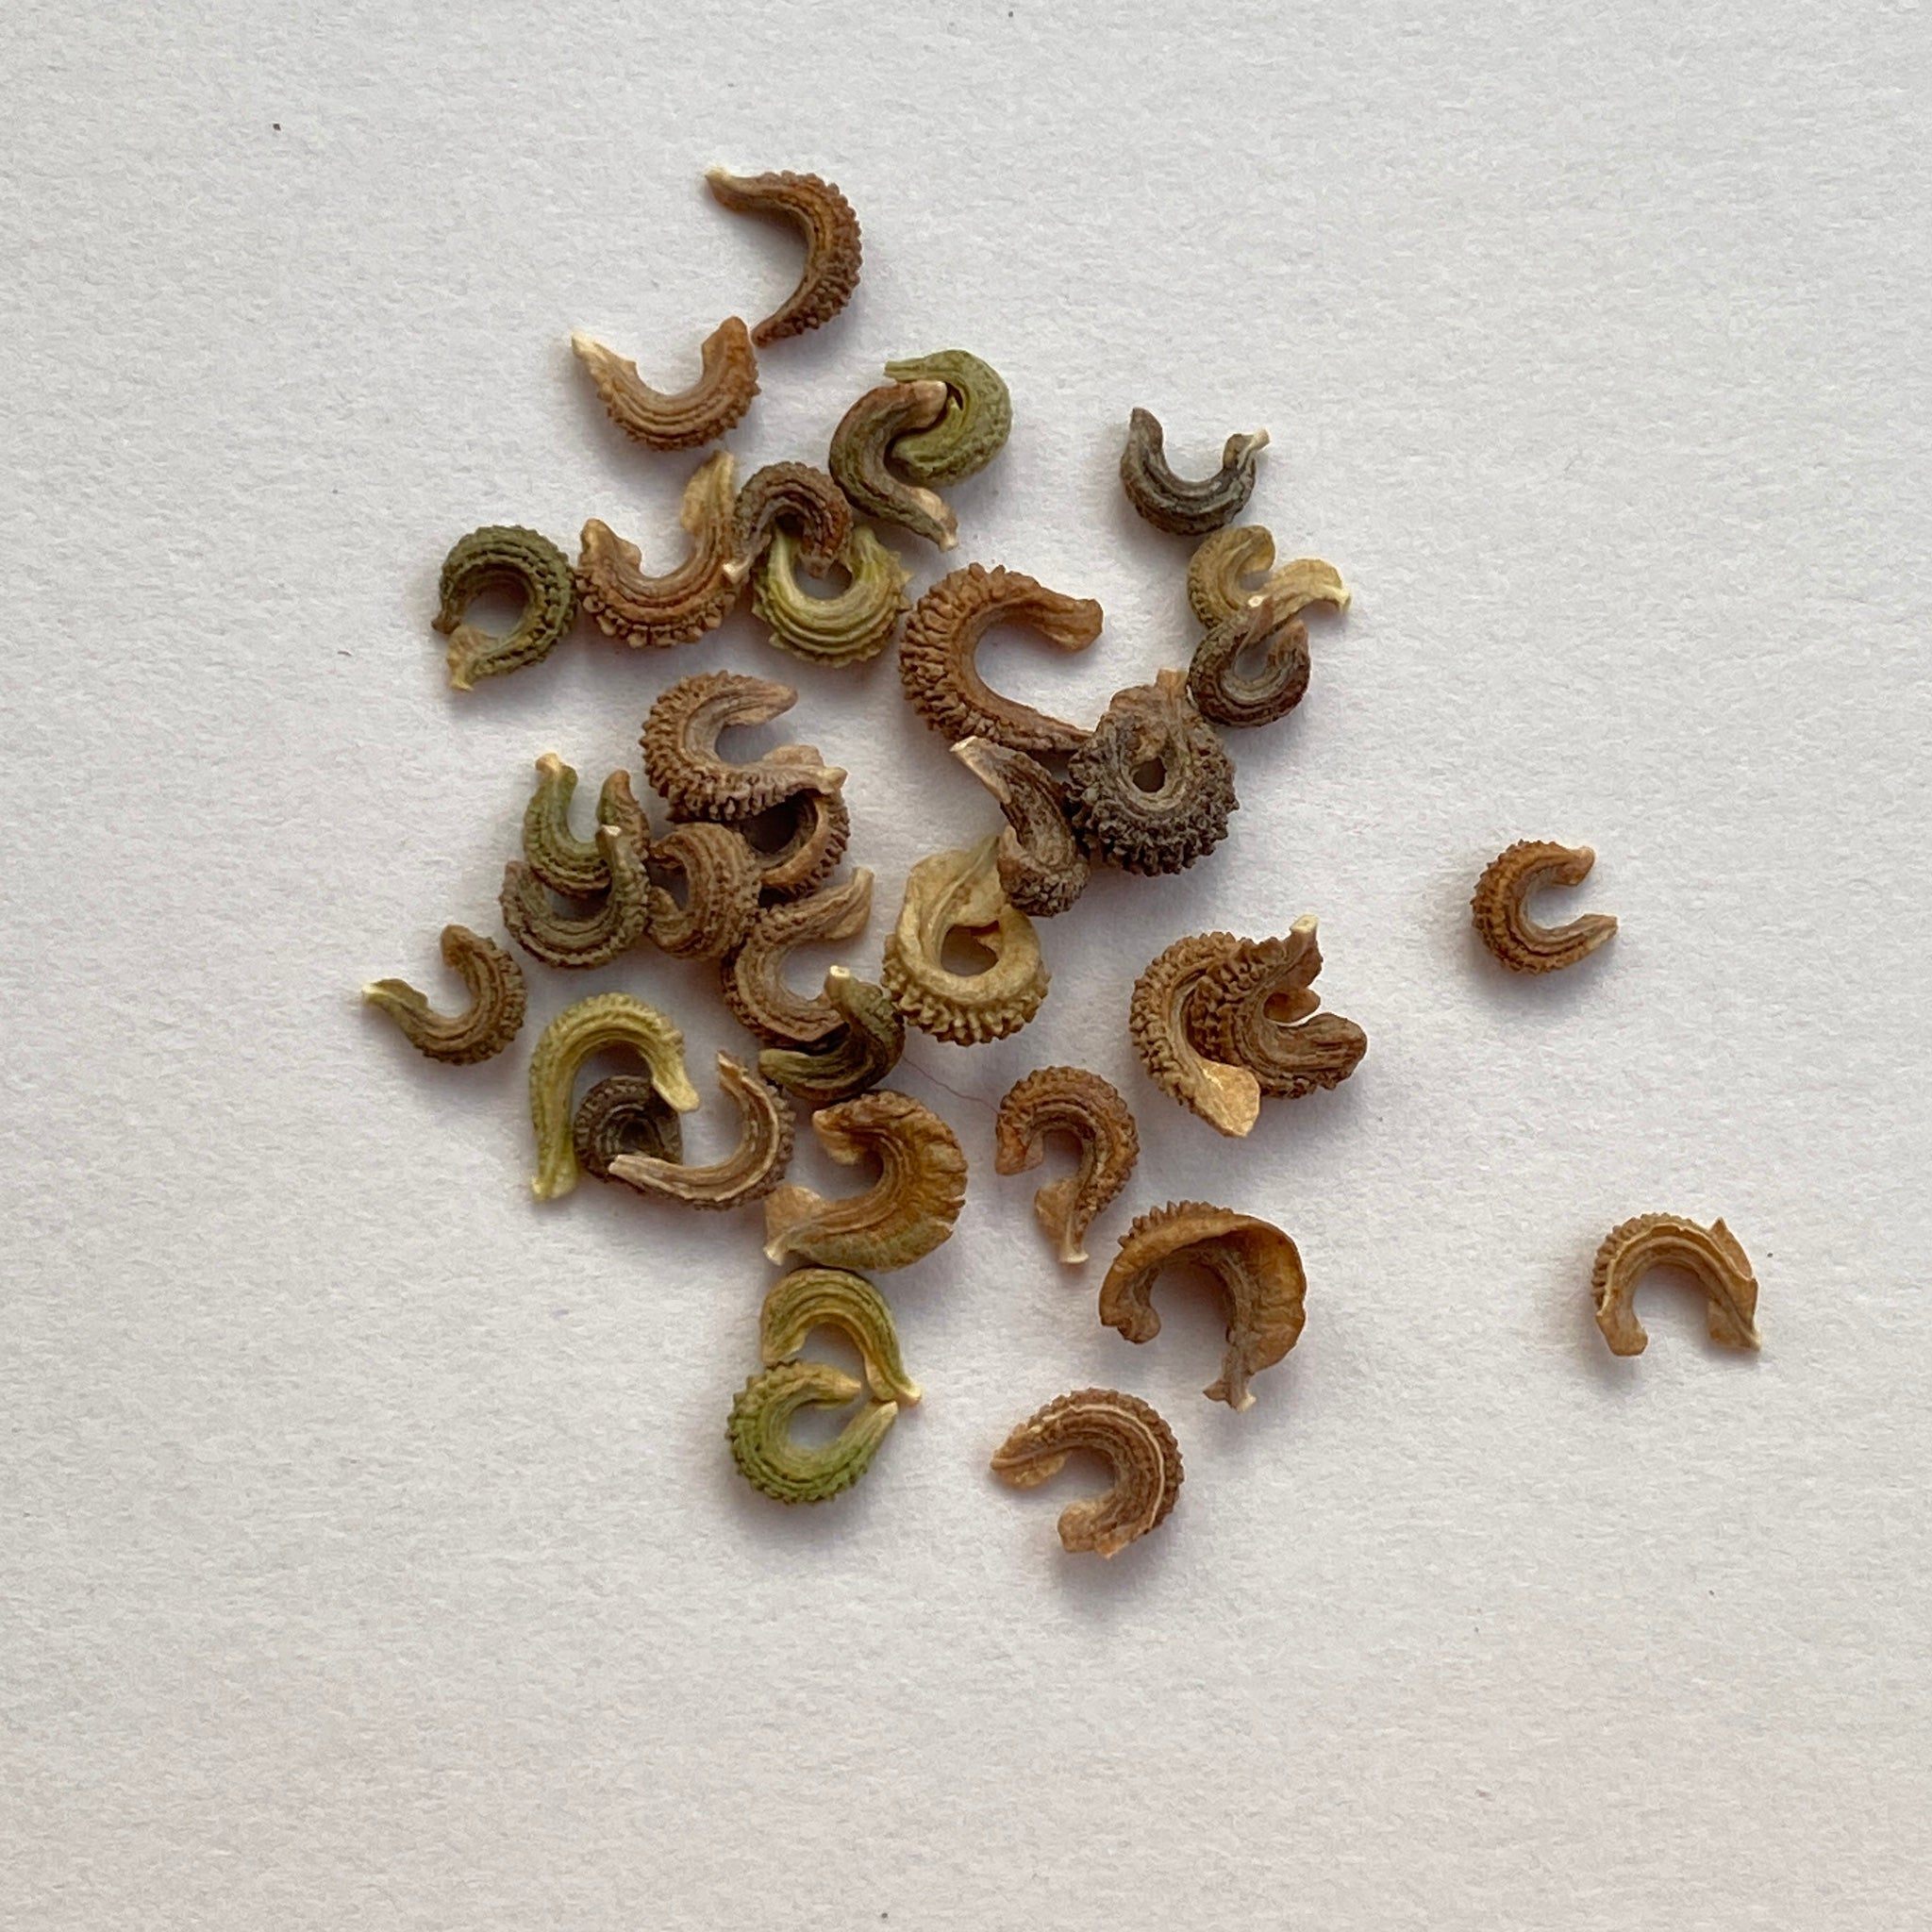 Calendula seeds - calendula officinalis